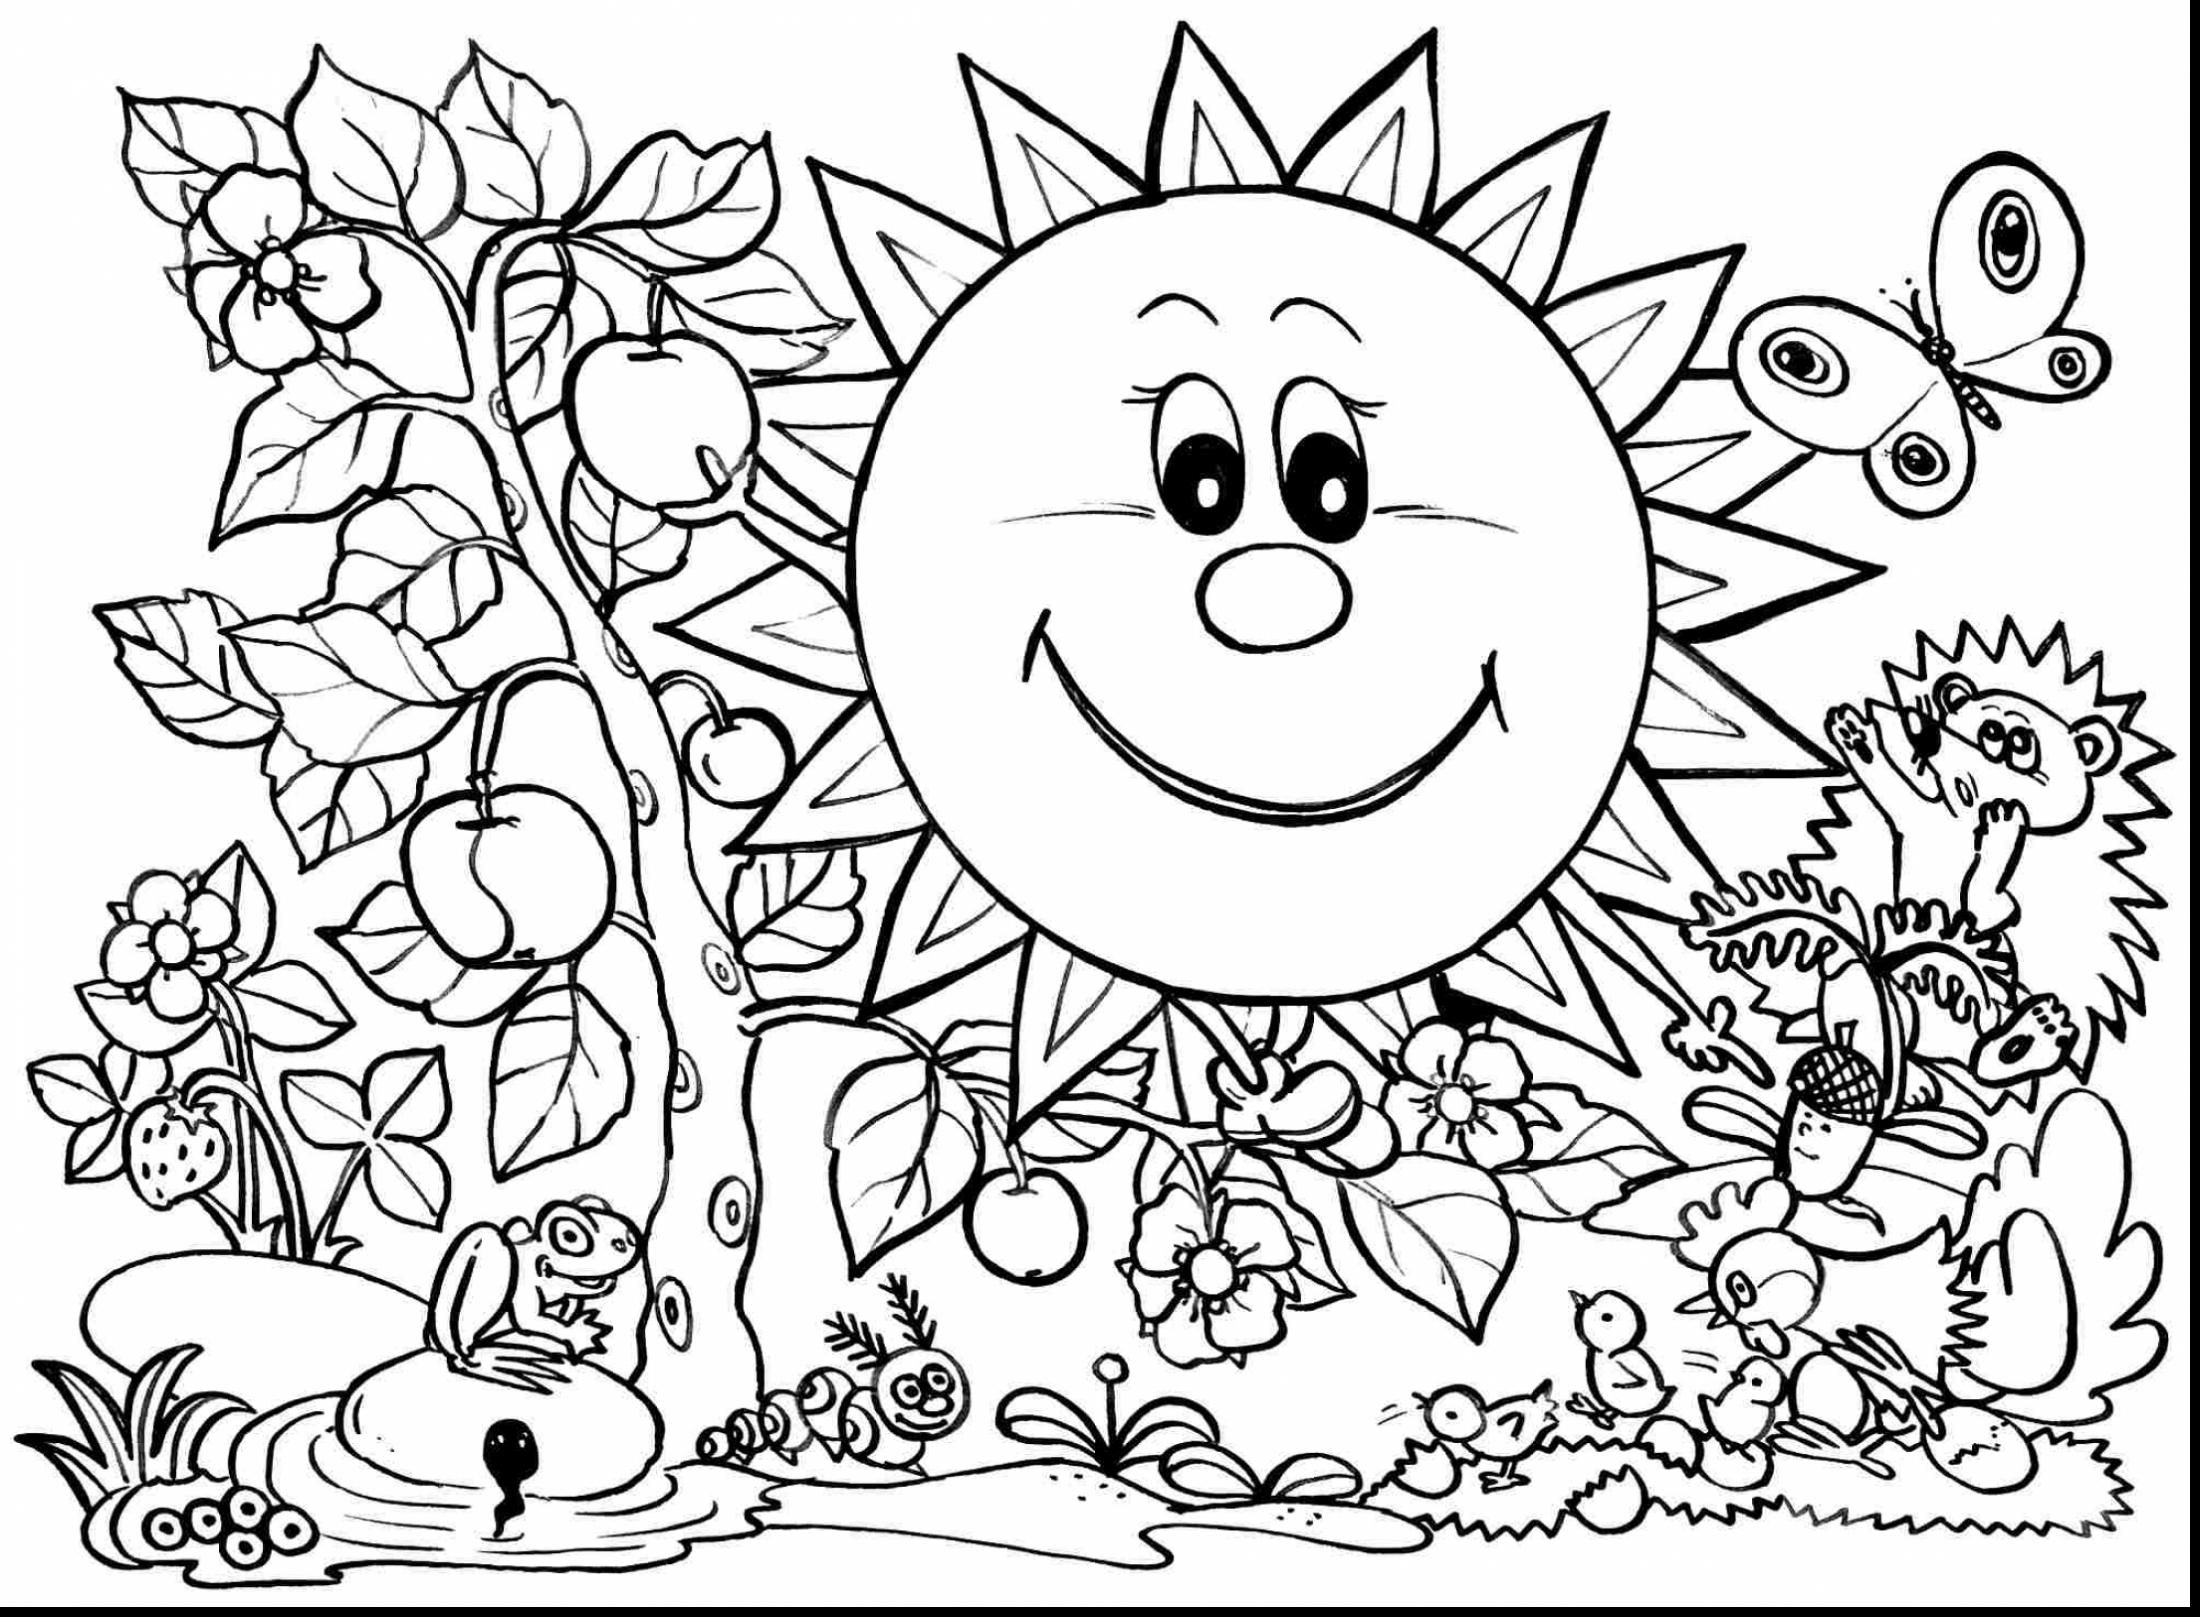 spring nature coloring pages spring blossoms tree coloring pages nature seasons spring coloring nature pages